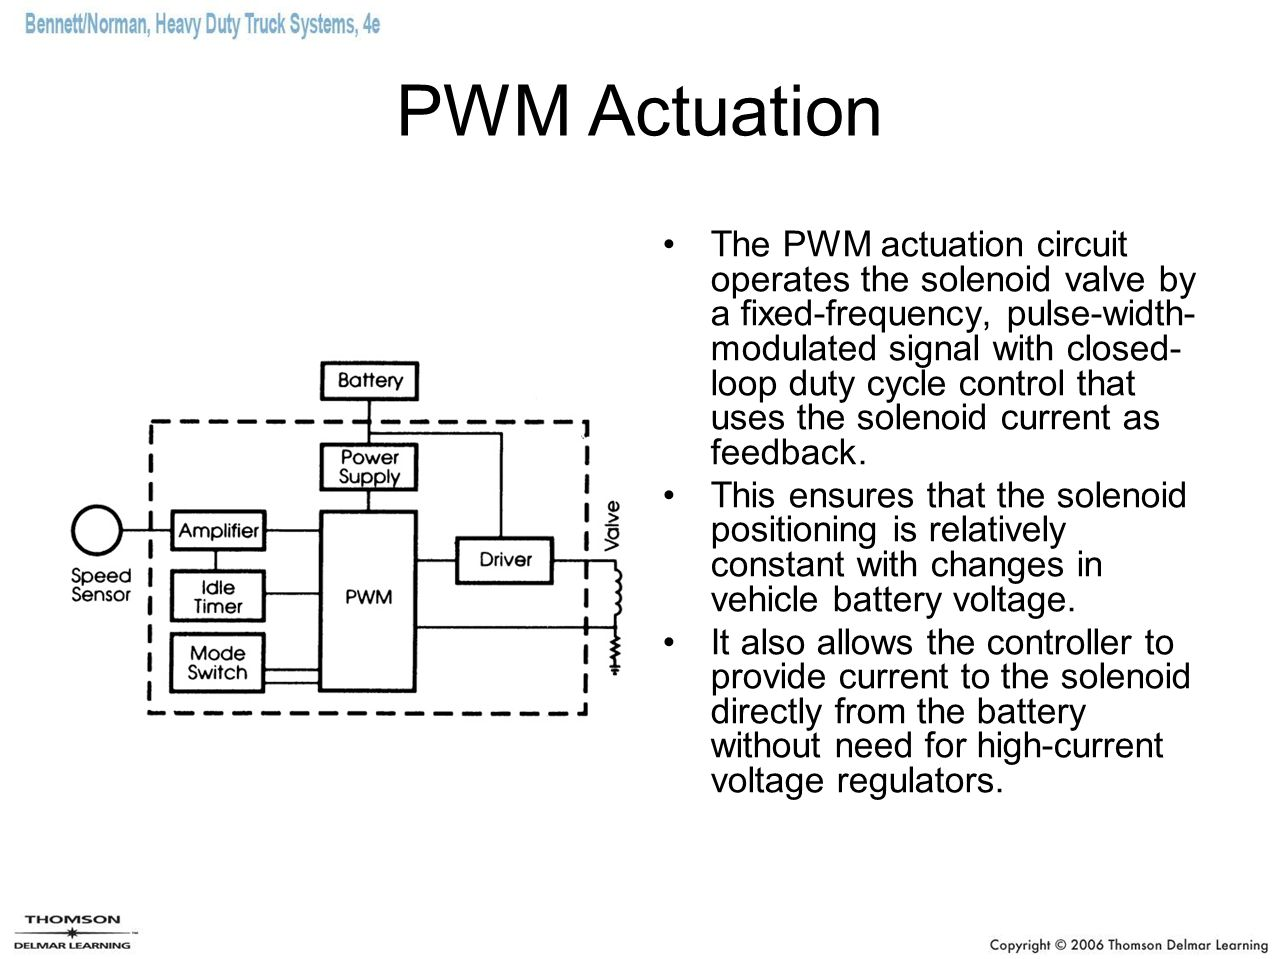 PWM Actuation